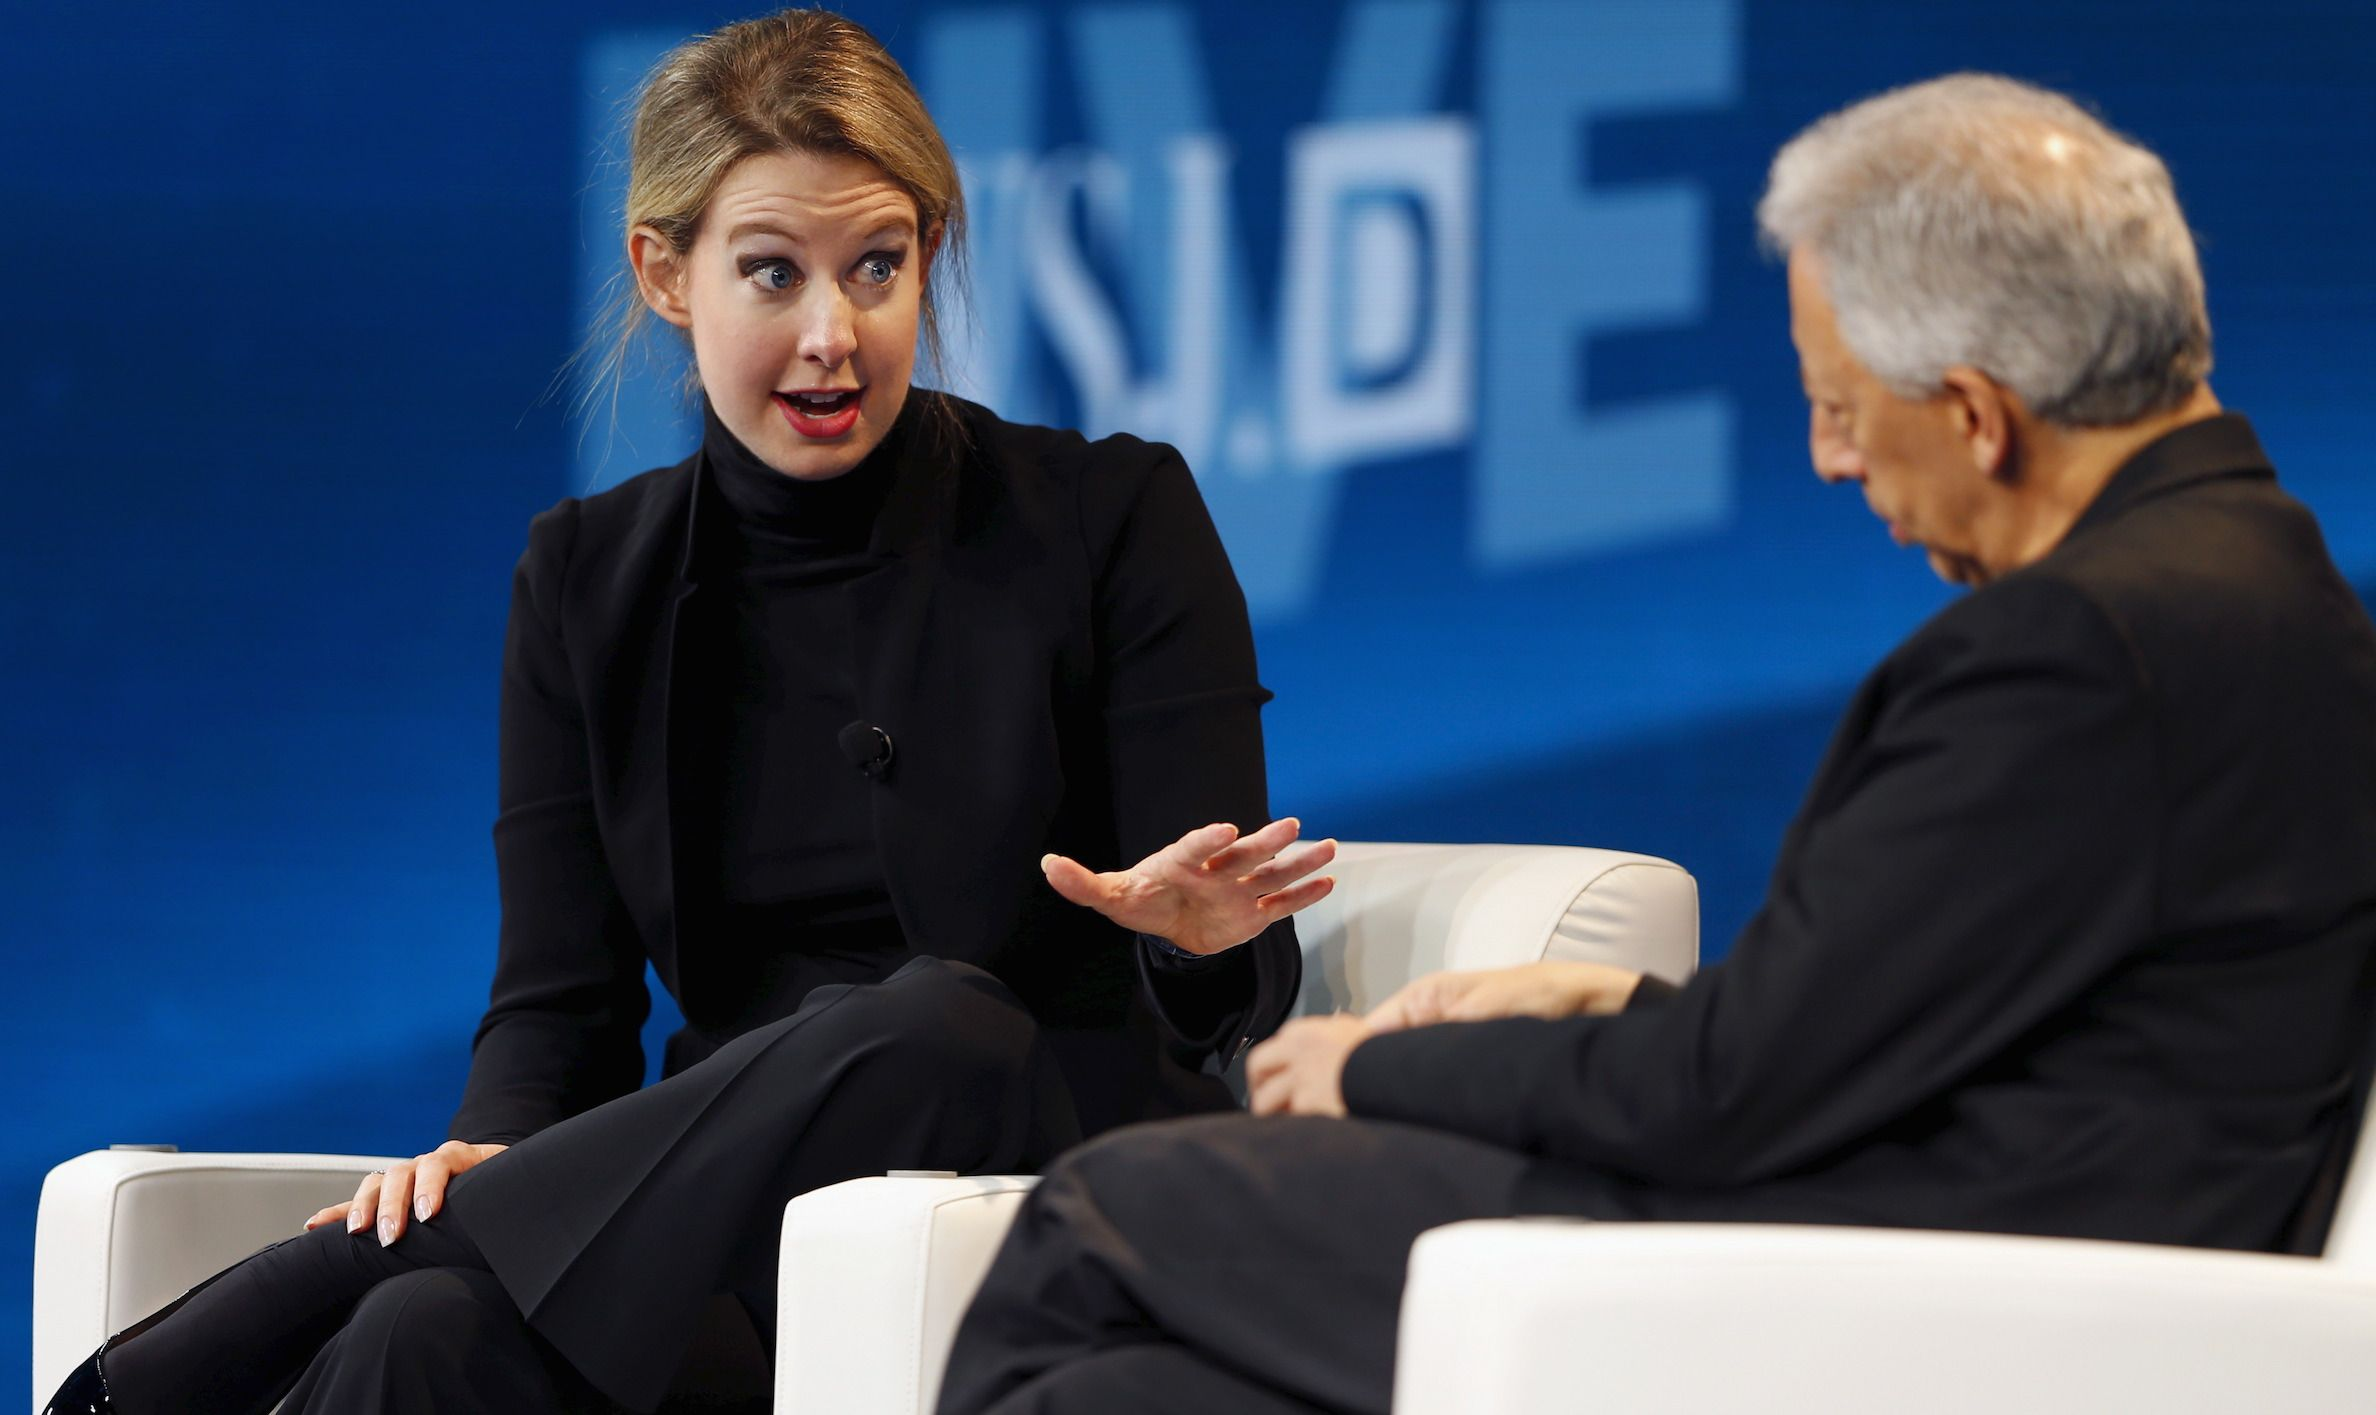 Elizabeth Holmes, founder and CEO of Theranos, speaks with Jonathan Krim, global technology editor at the Wall Street Journal, at the Wall Street Journal Digital Live (WSJDLive) conference at the Montage hotel in Laguna Beach, California, October 21, 2015. REUTERS/Mike Blake - RTS5HYI